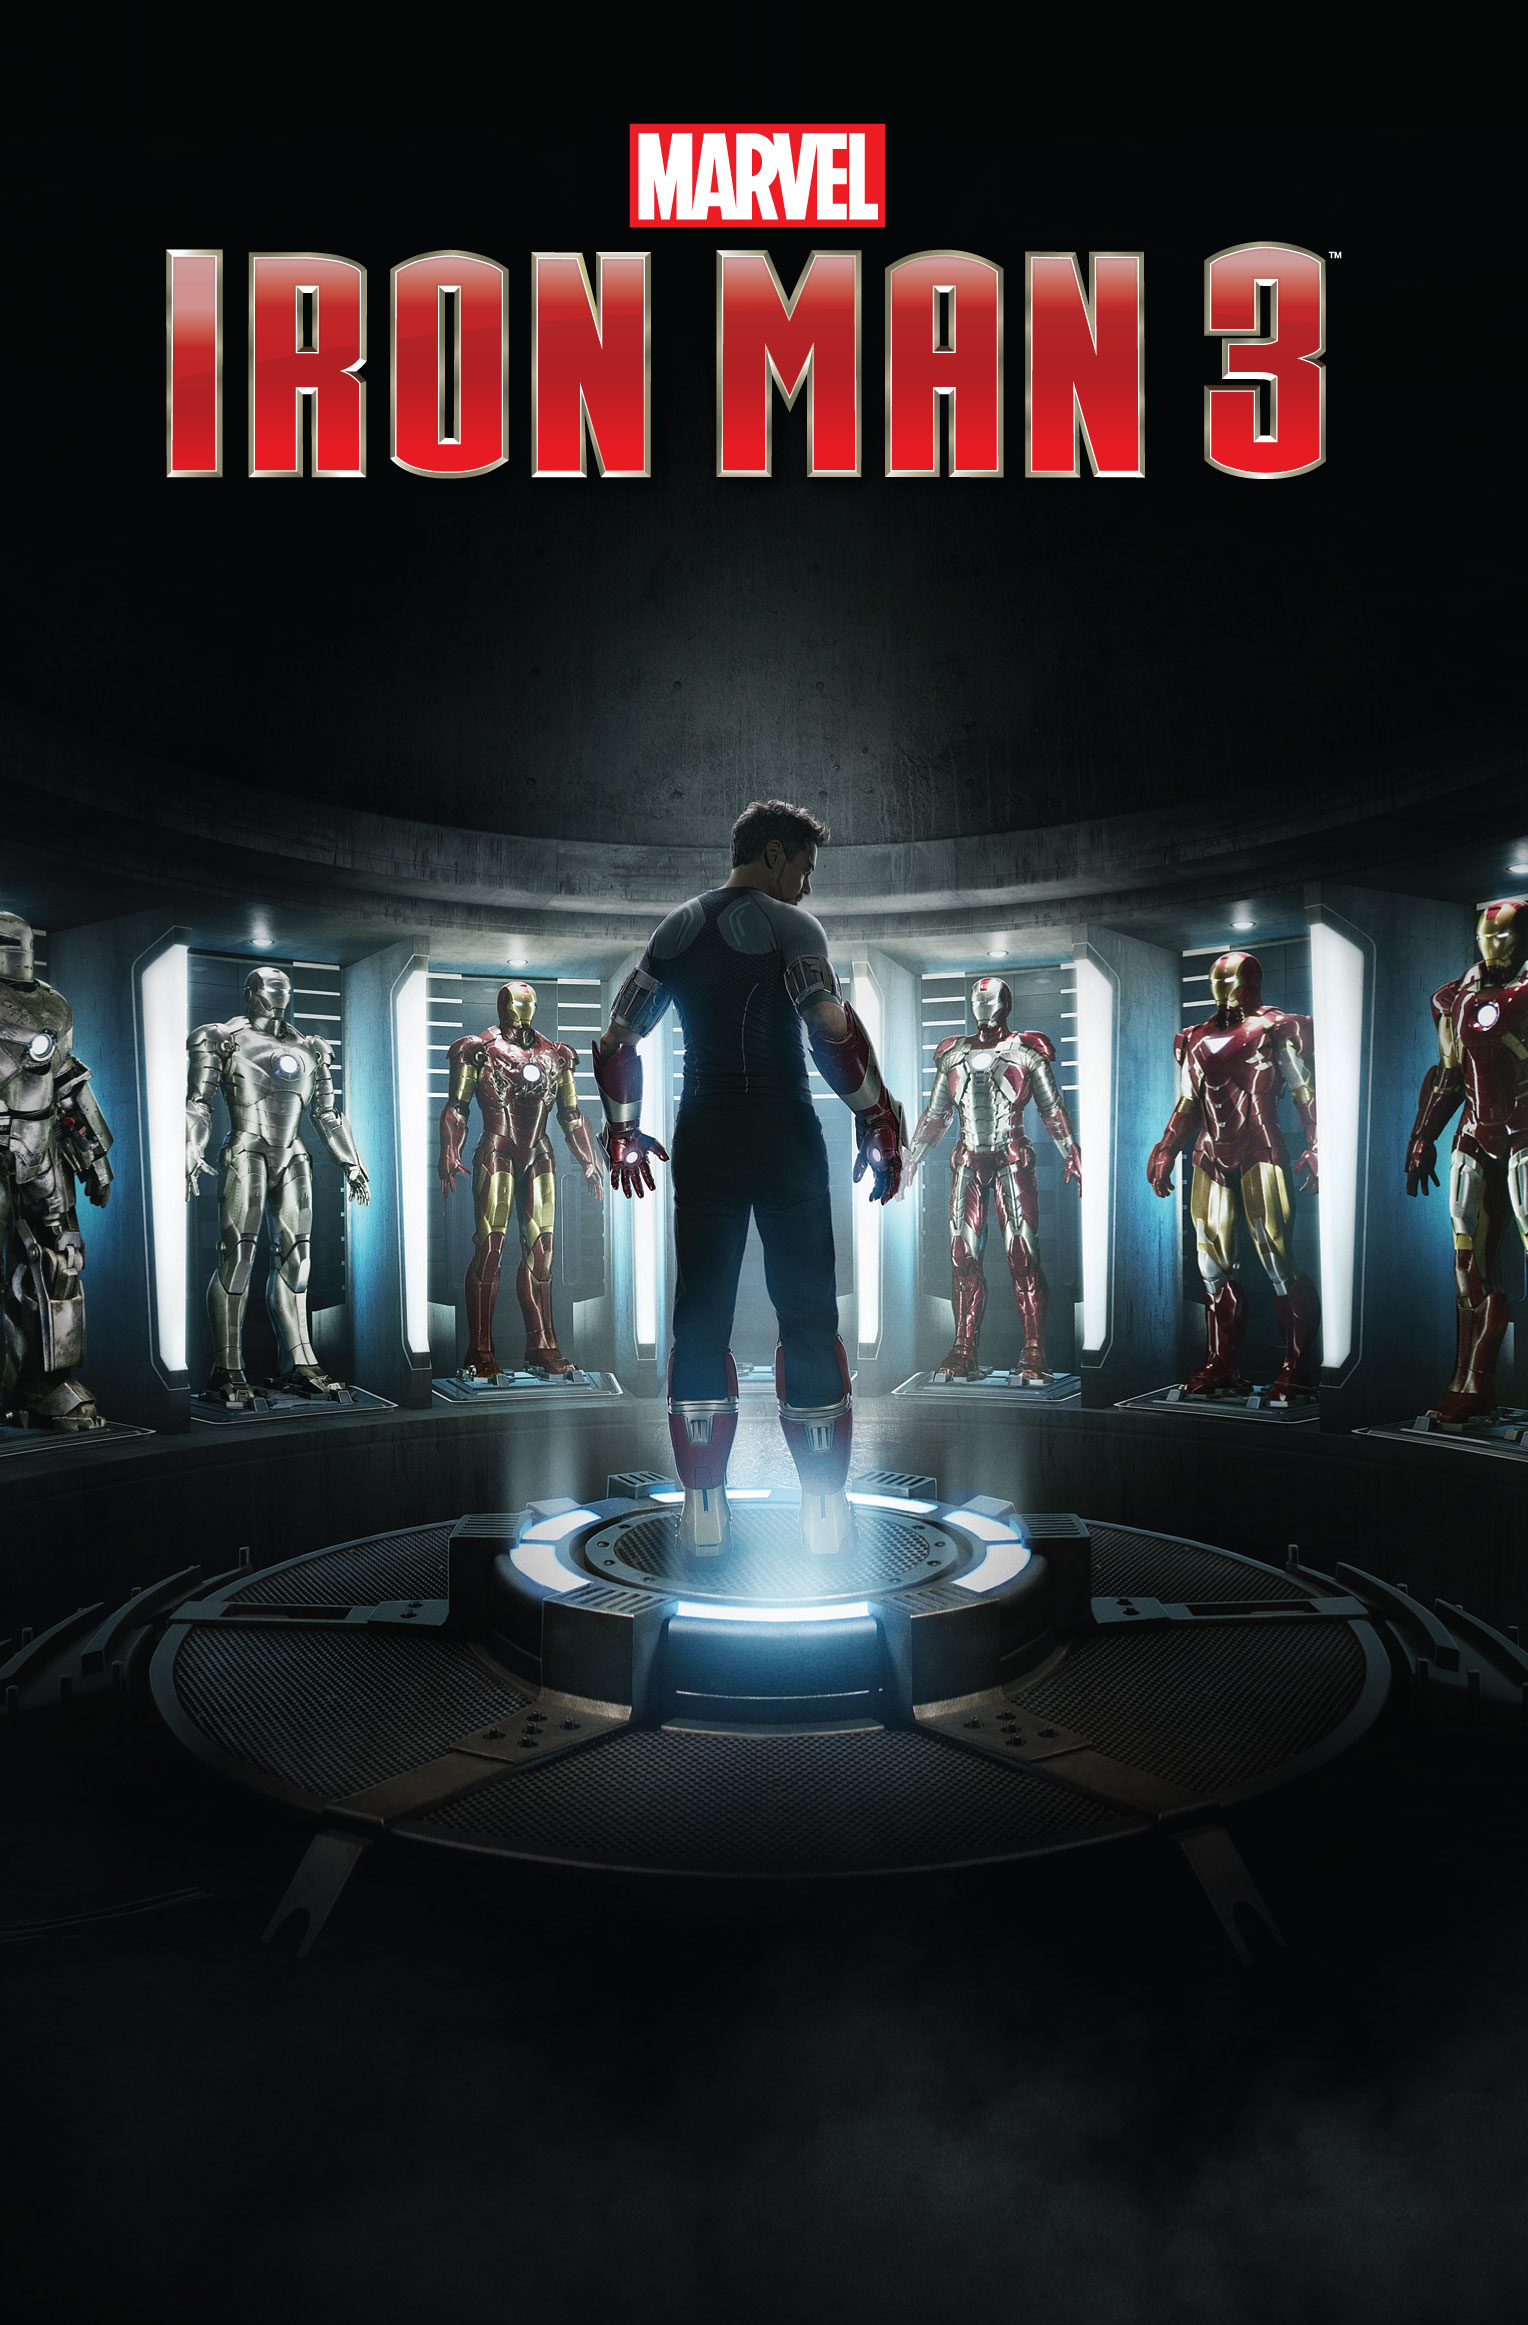 Iron Man 3 by Marvel Press Group